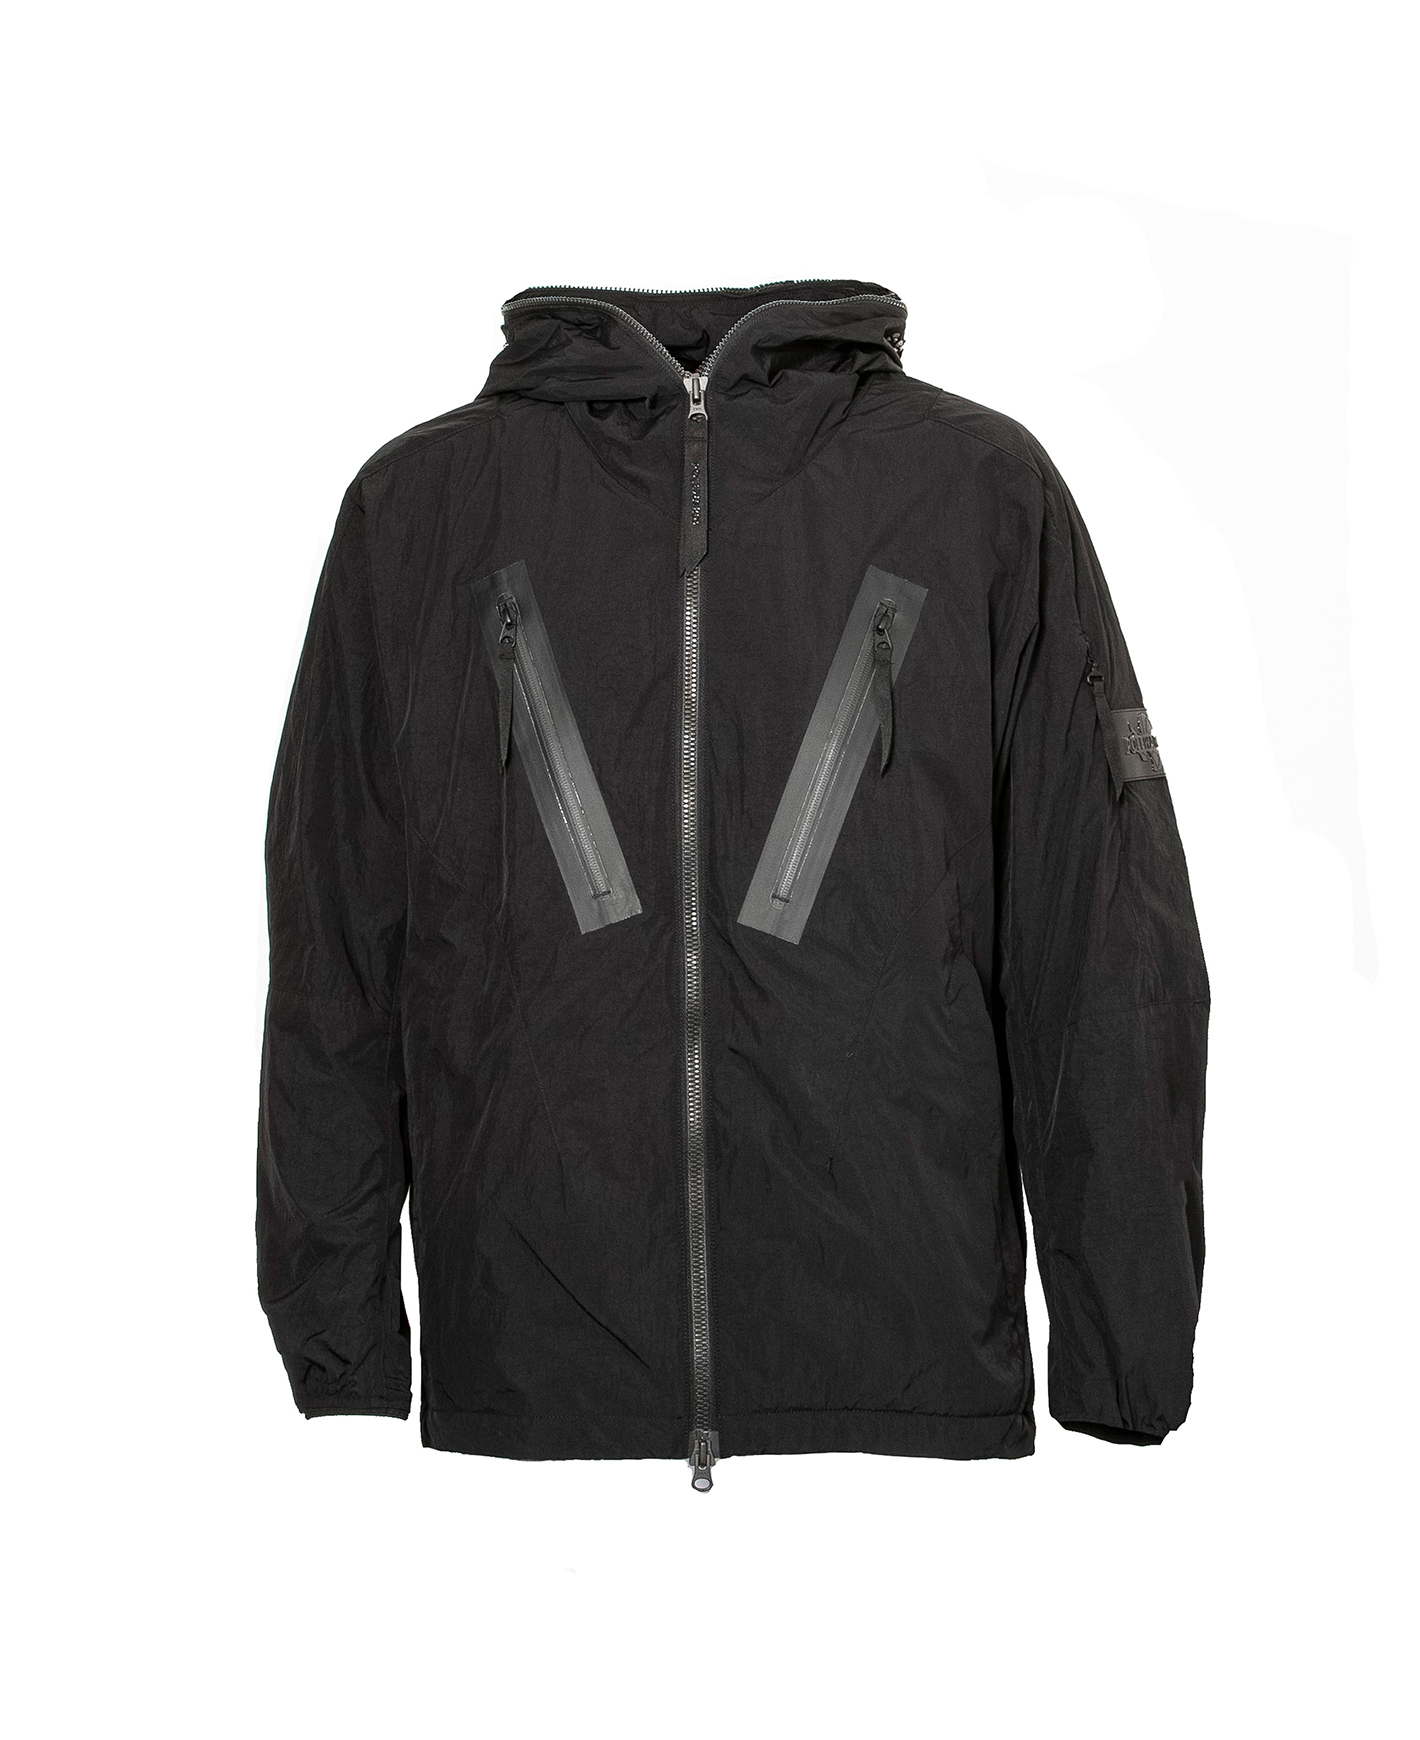 THERMOTRON HOODED JACKET